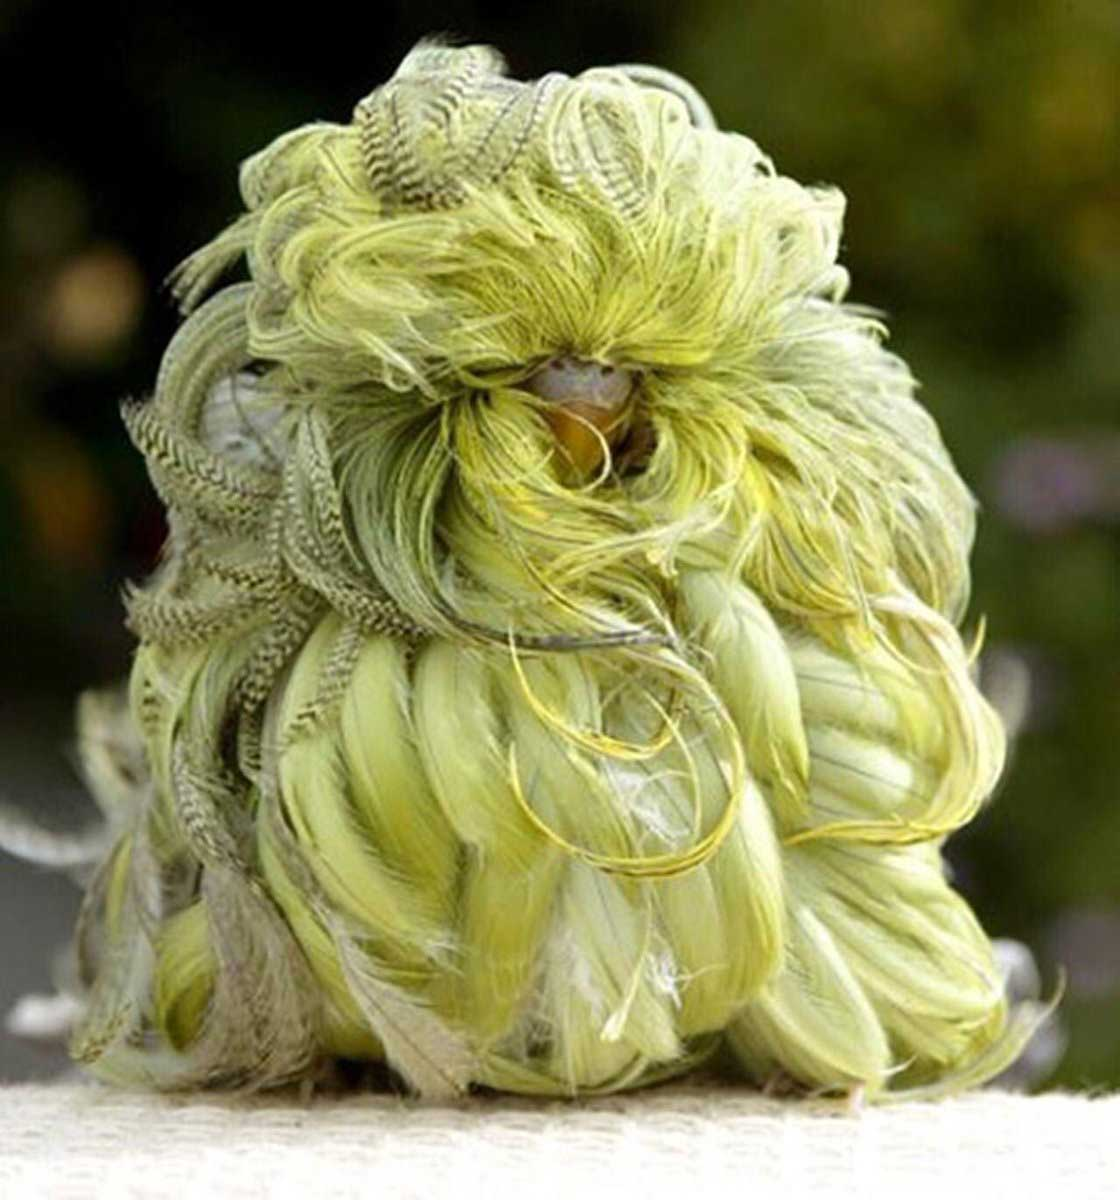 duster-budgie-2